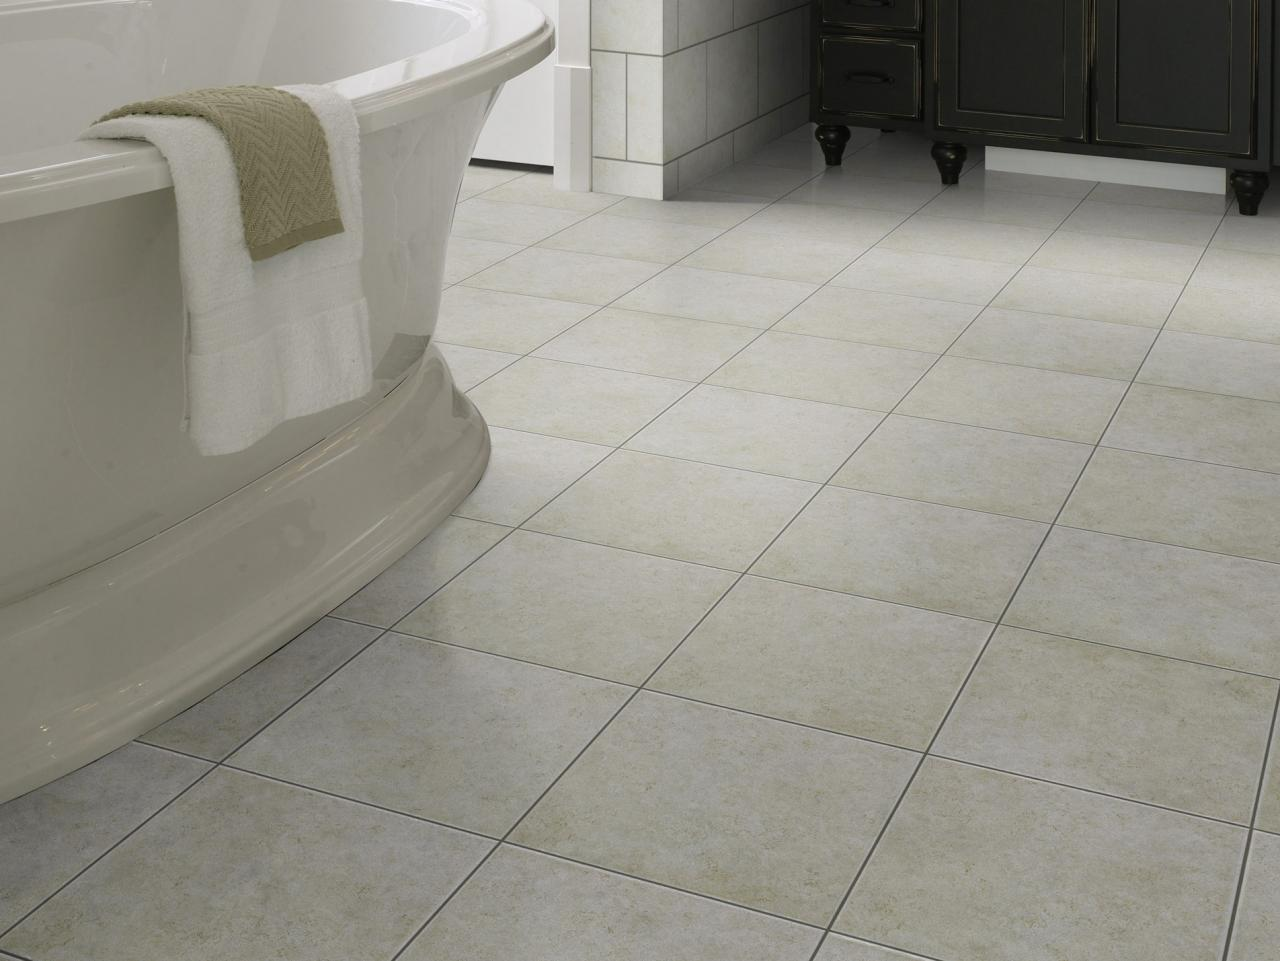 Why homeowners love ceramic tile hgtv Bathroom flooring tile